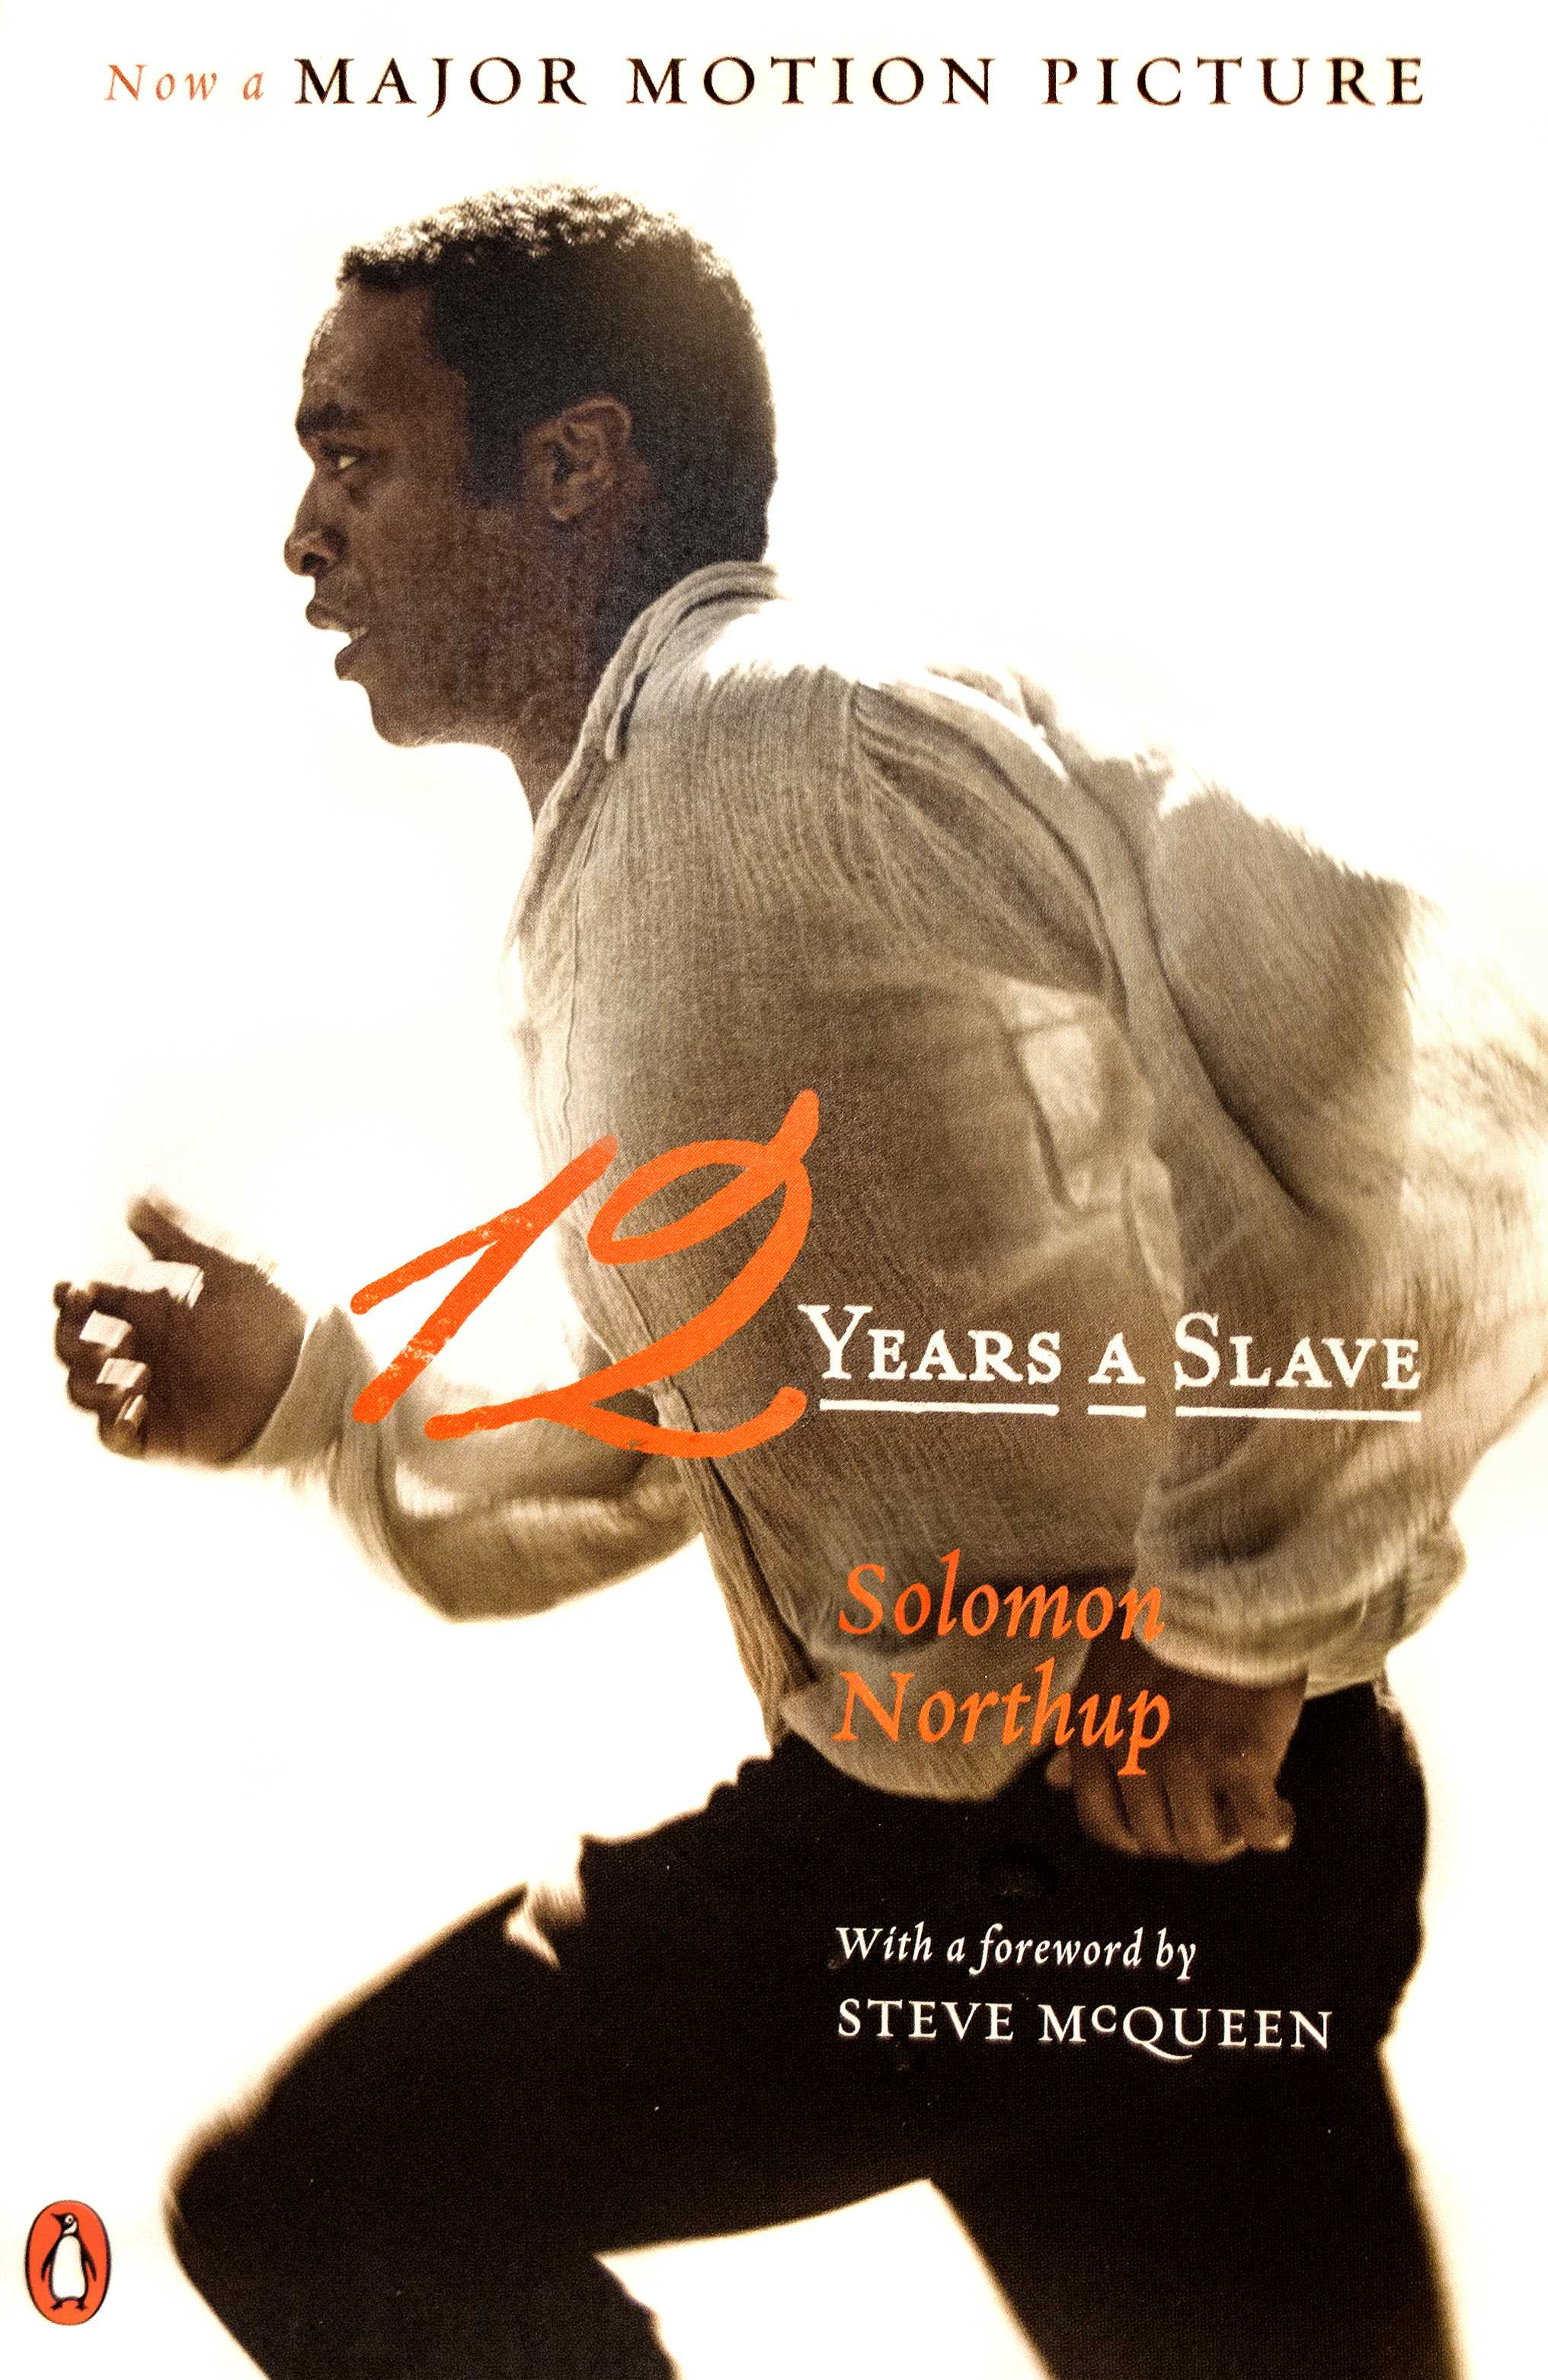 https://i2.wp.com/upressonline.com/wp-content/uploads/12-Years-a-Slave-Enhanced.jpg